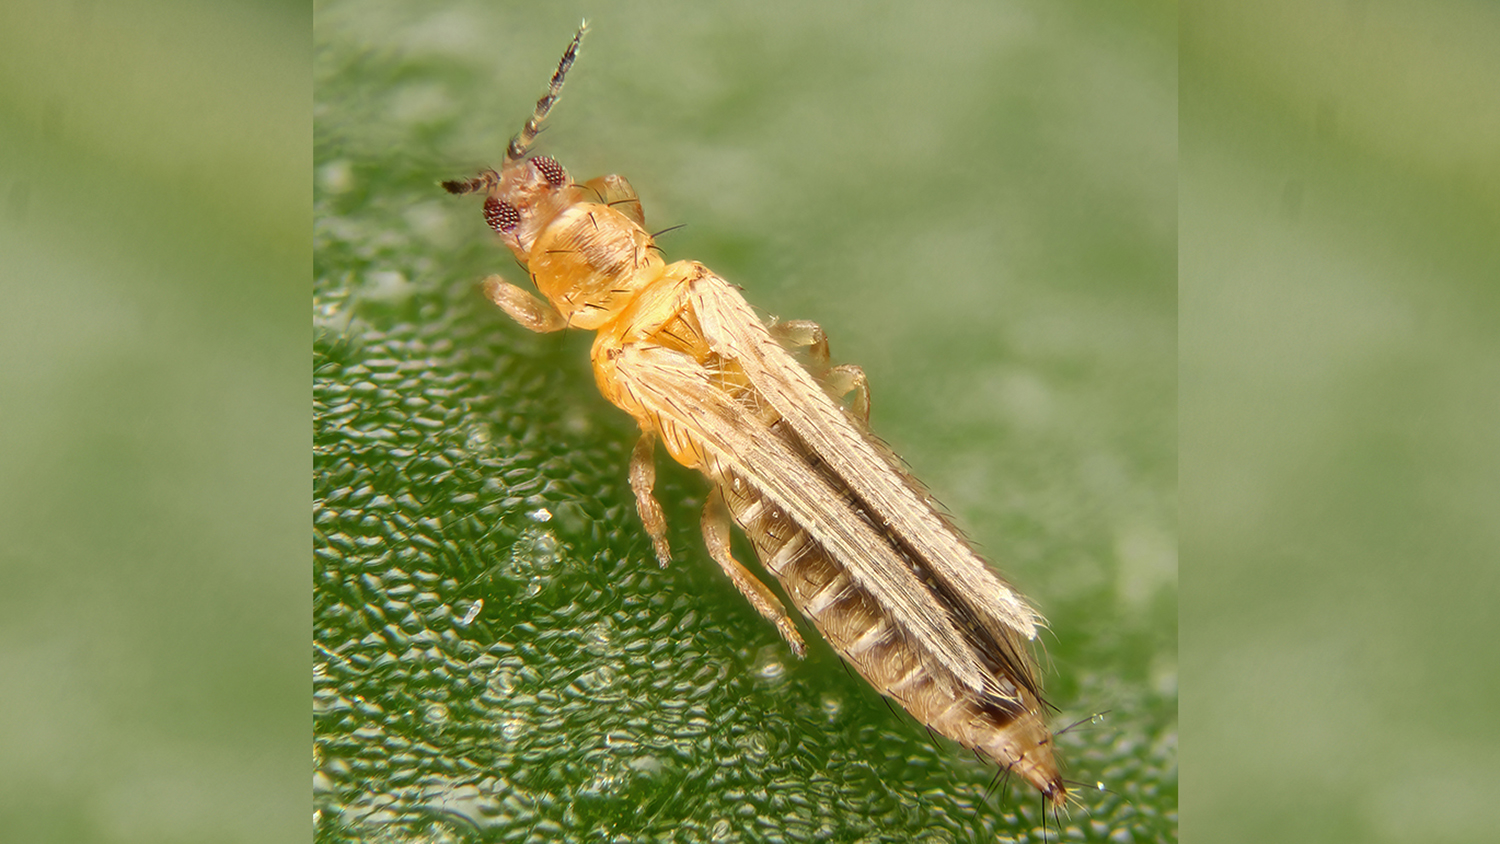 Insect with fringed wings on plant material